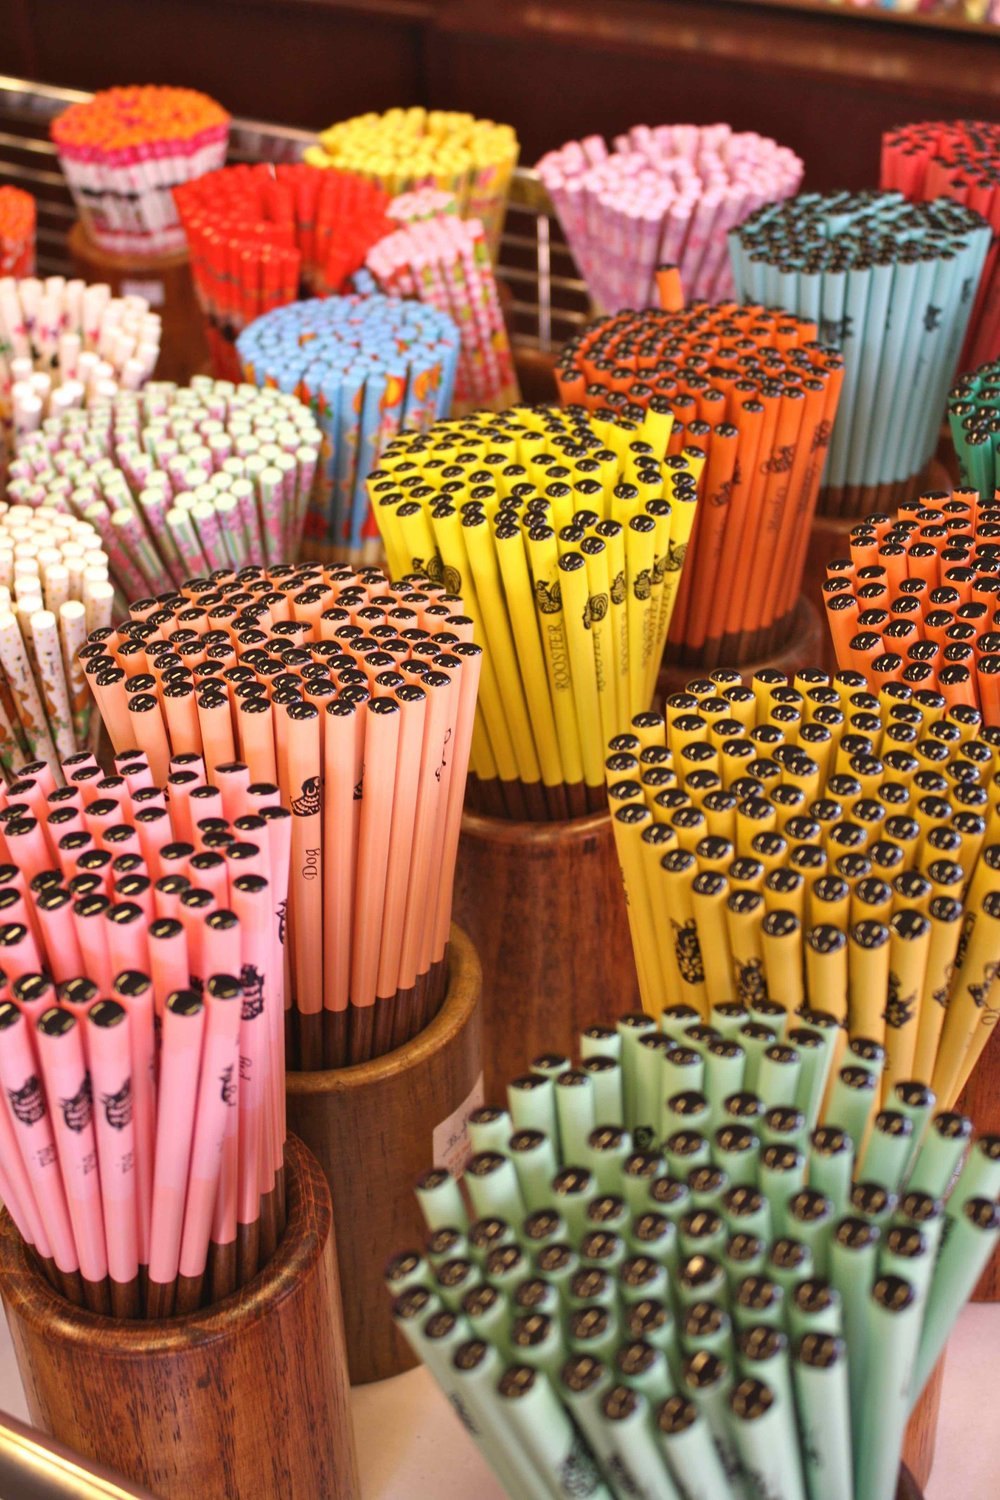 Chopsticks, Singapore, 2011 ©